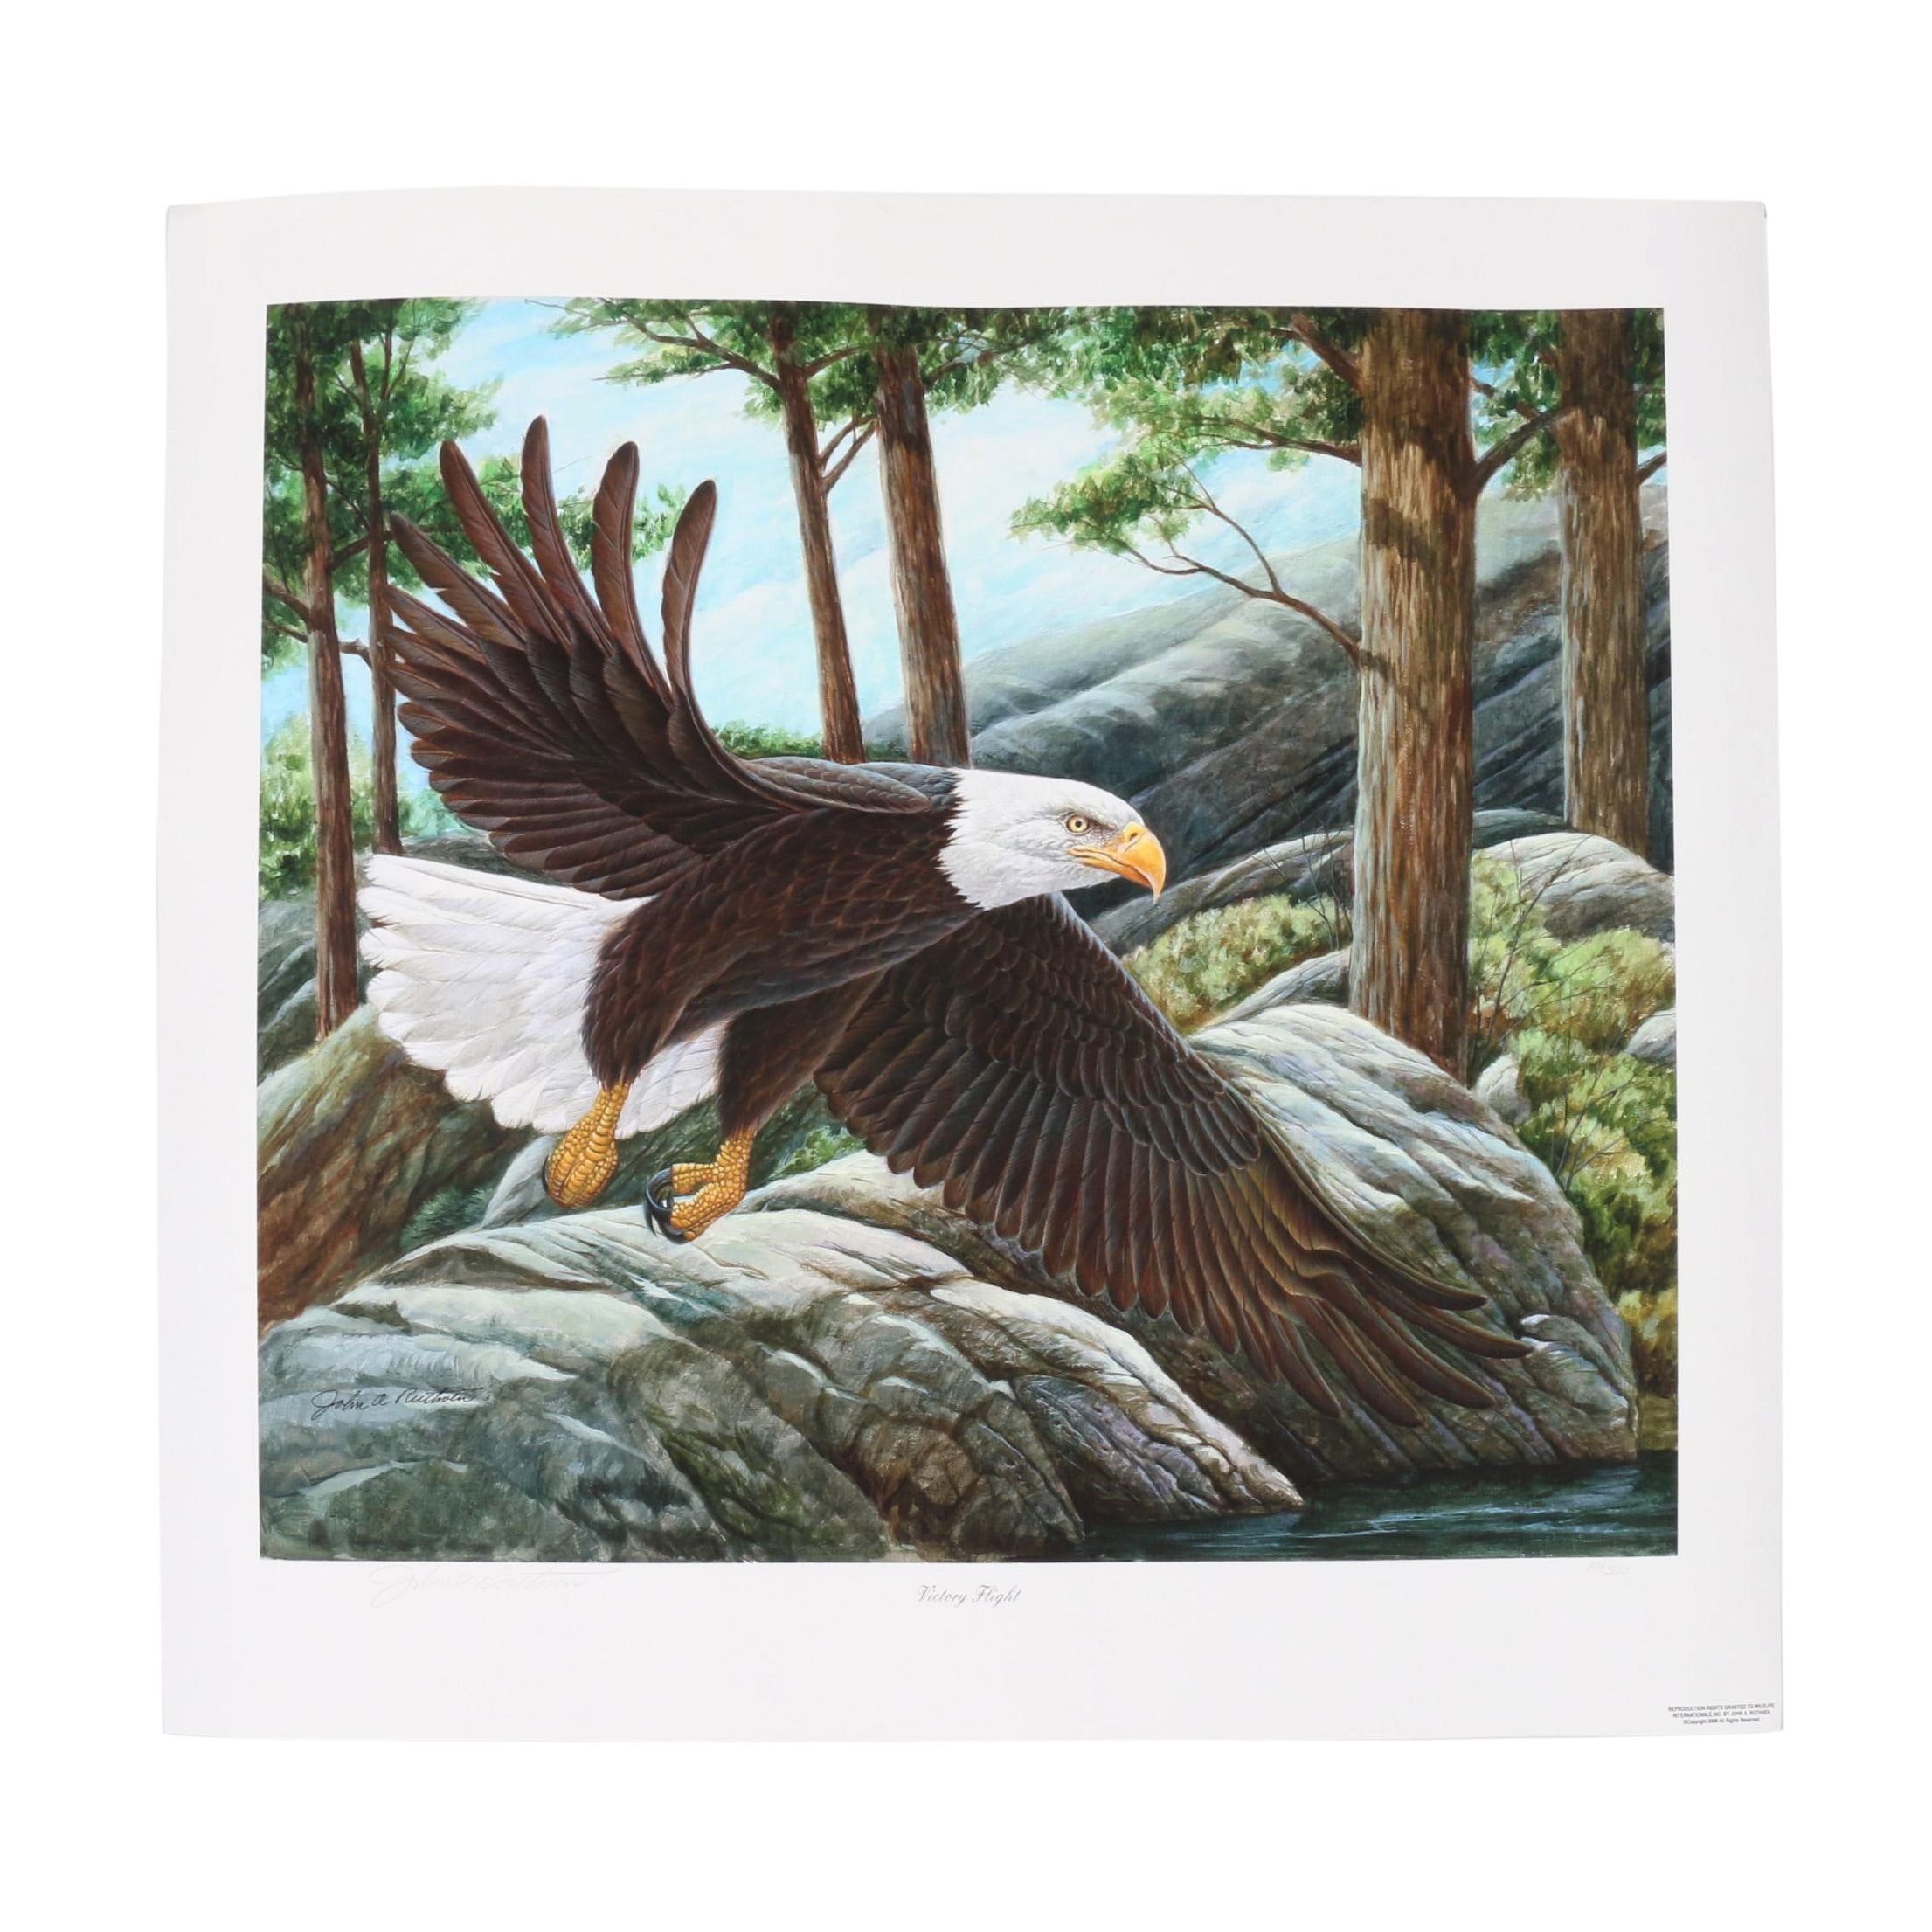 """John Ruthven Limited Edition Offset Lithograph """"Victory Flight"""""""